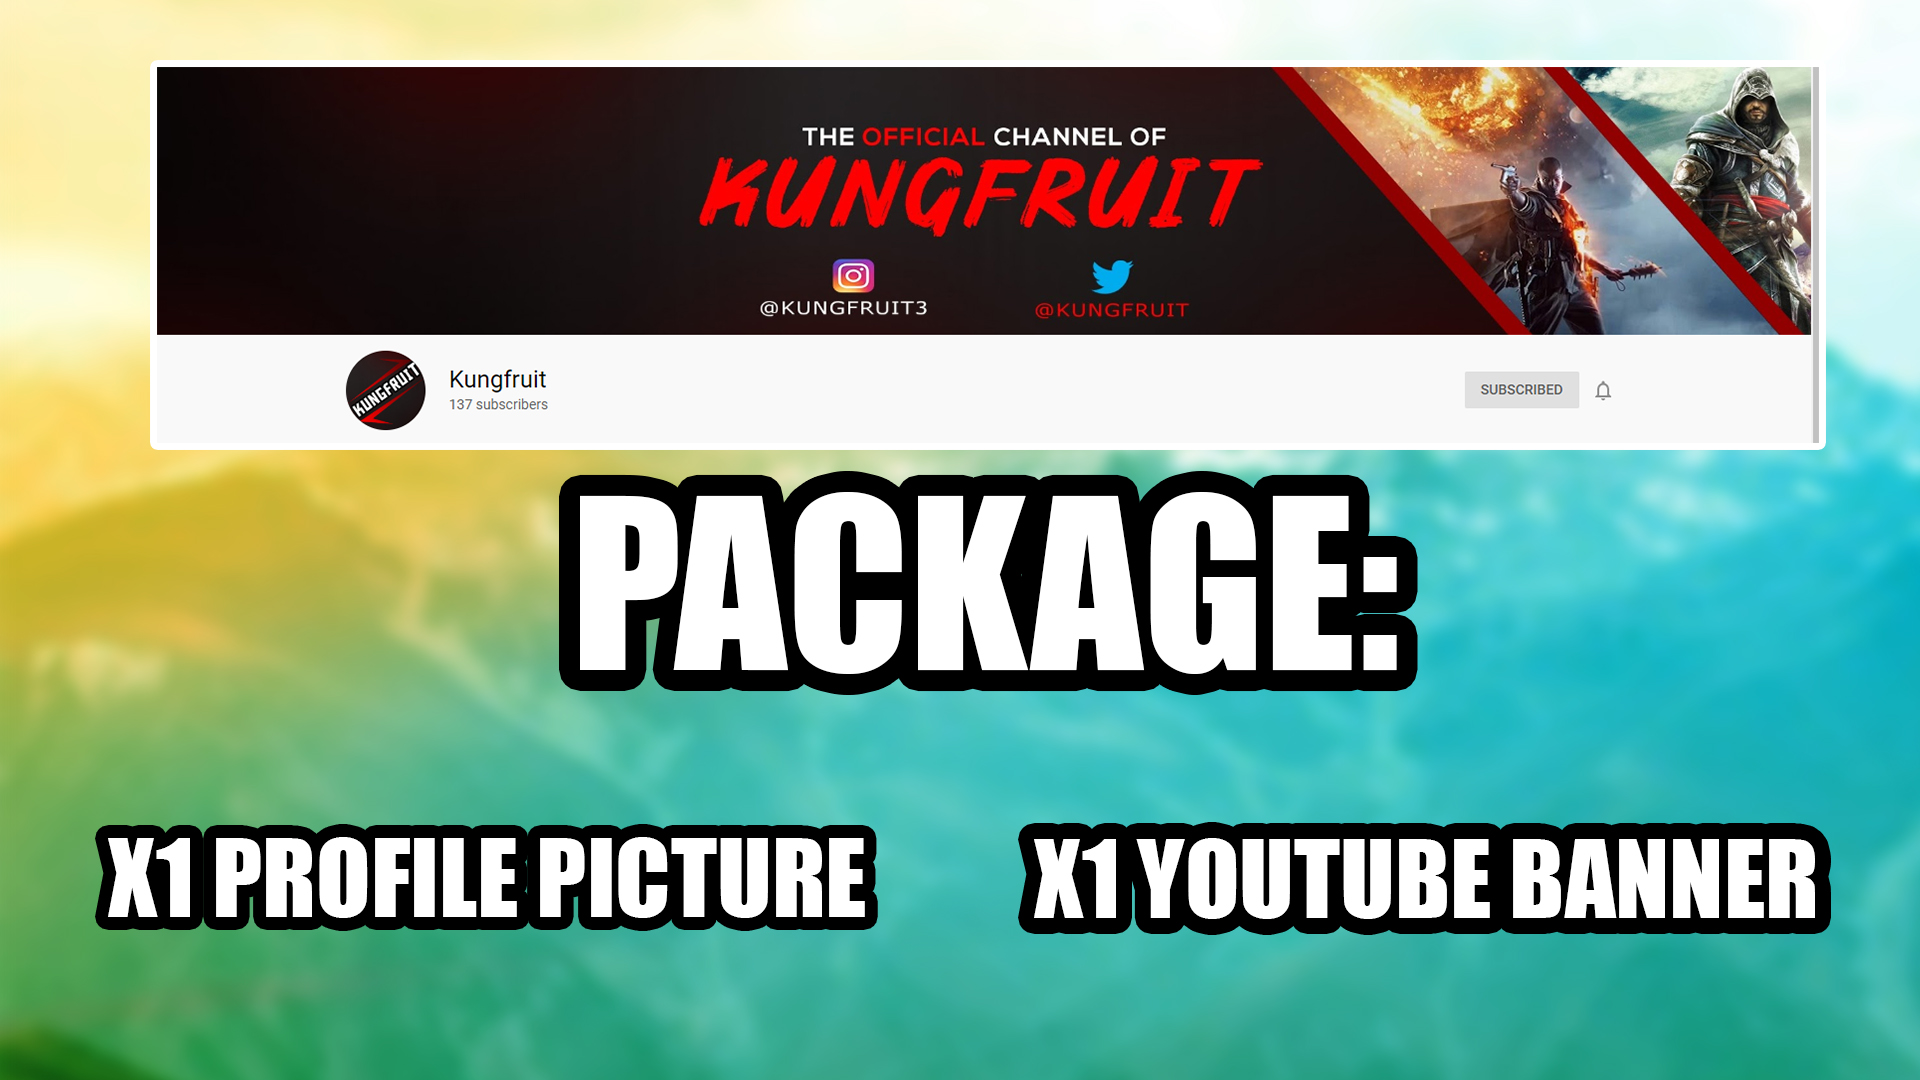 I will make you a package consisting of a youtube banner and profile picture.